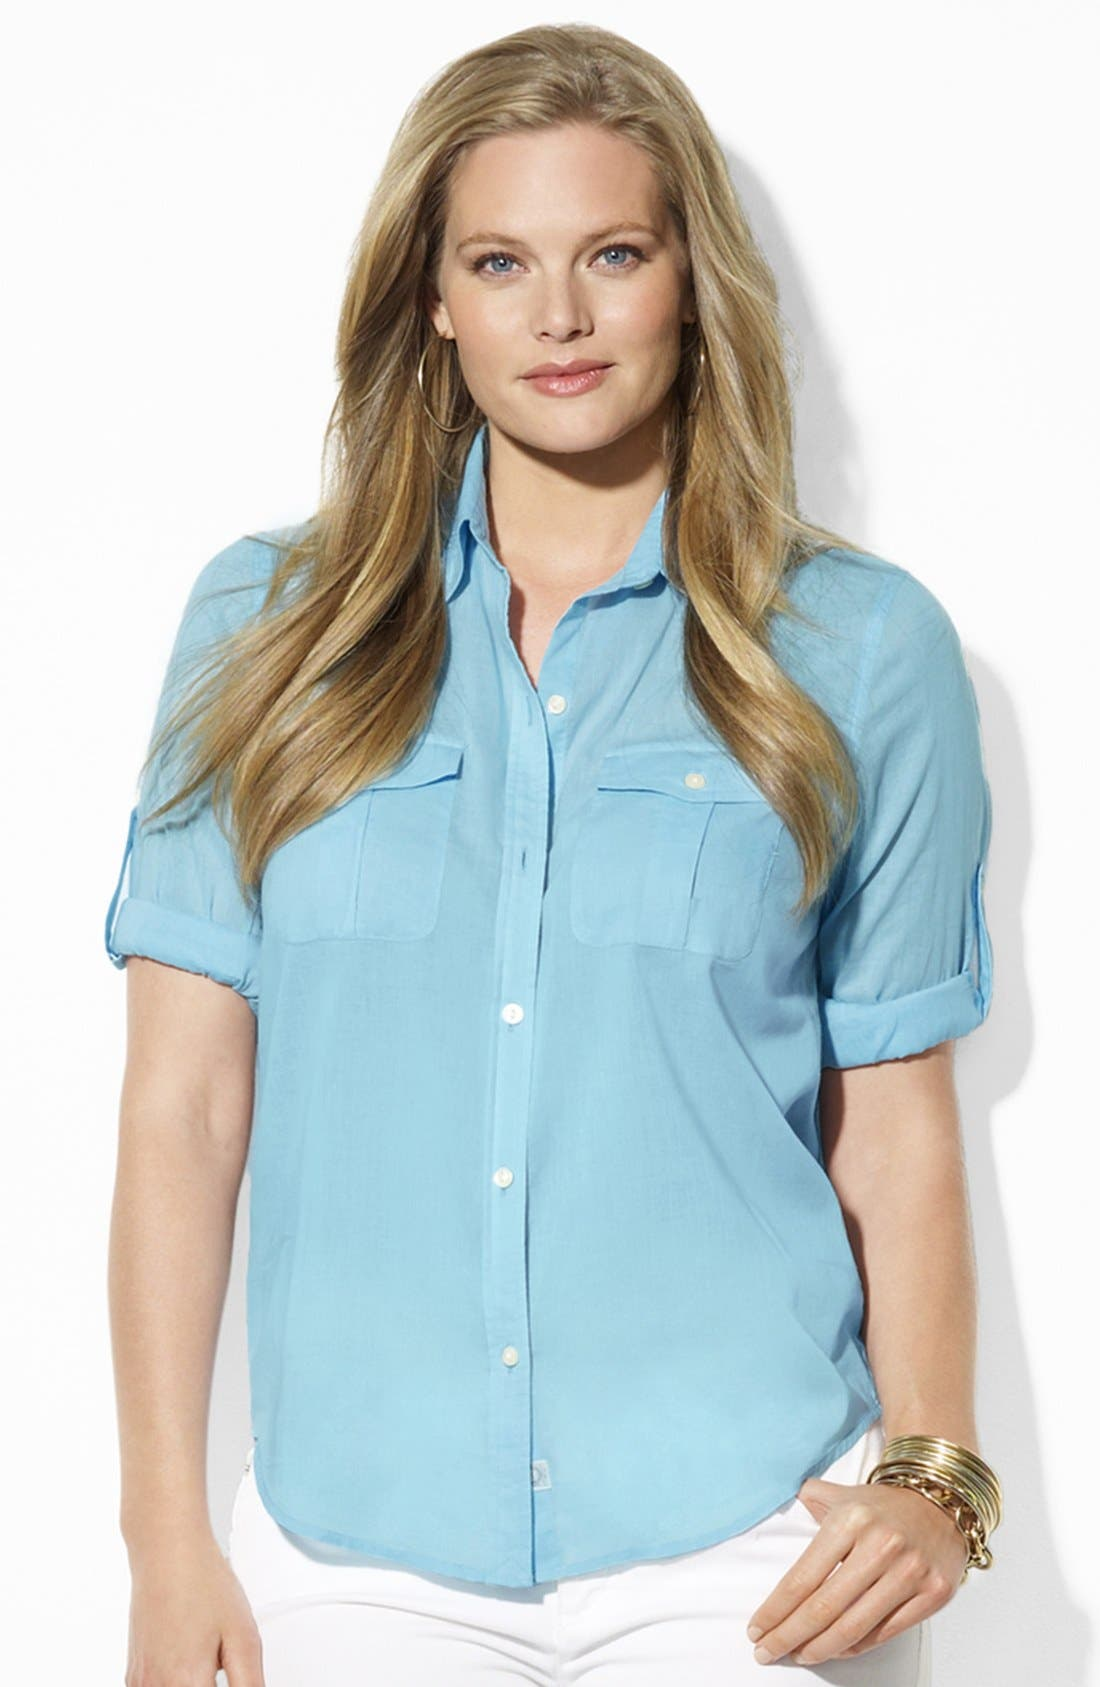 Alternate Image 1 Selected - Lauren Ralph Lauren Cotton Work Shirt (Plus Size)